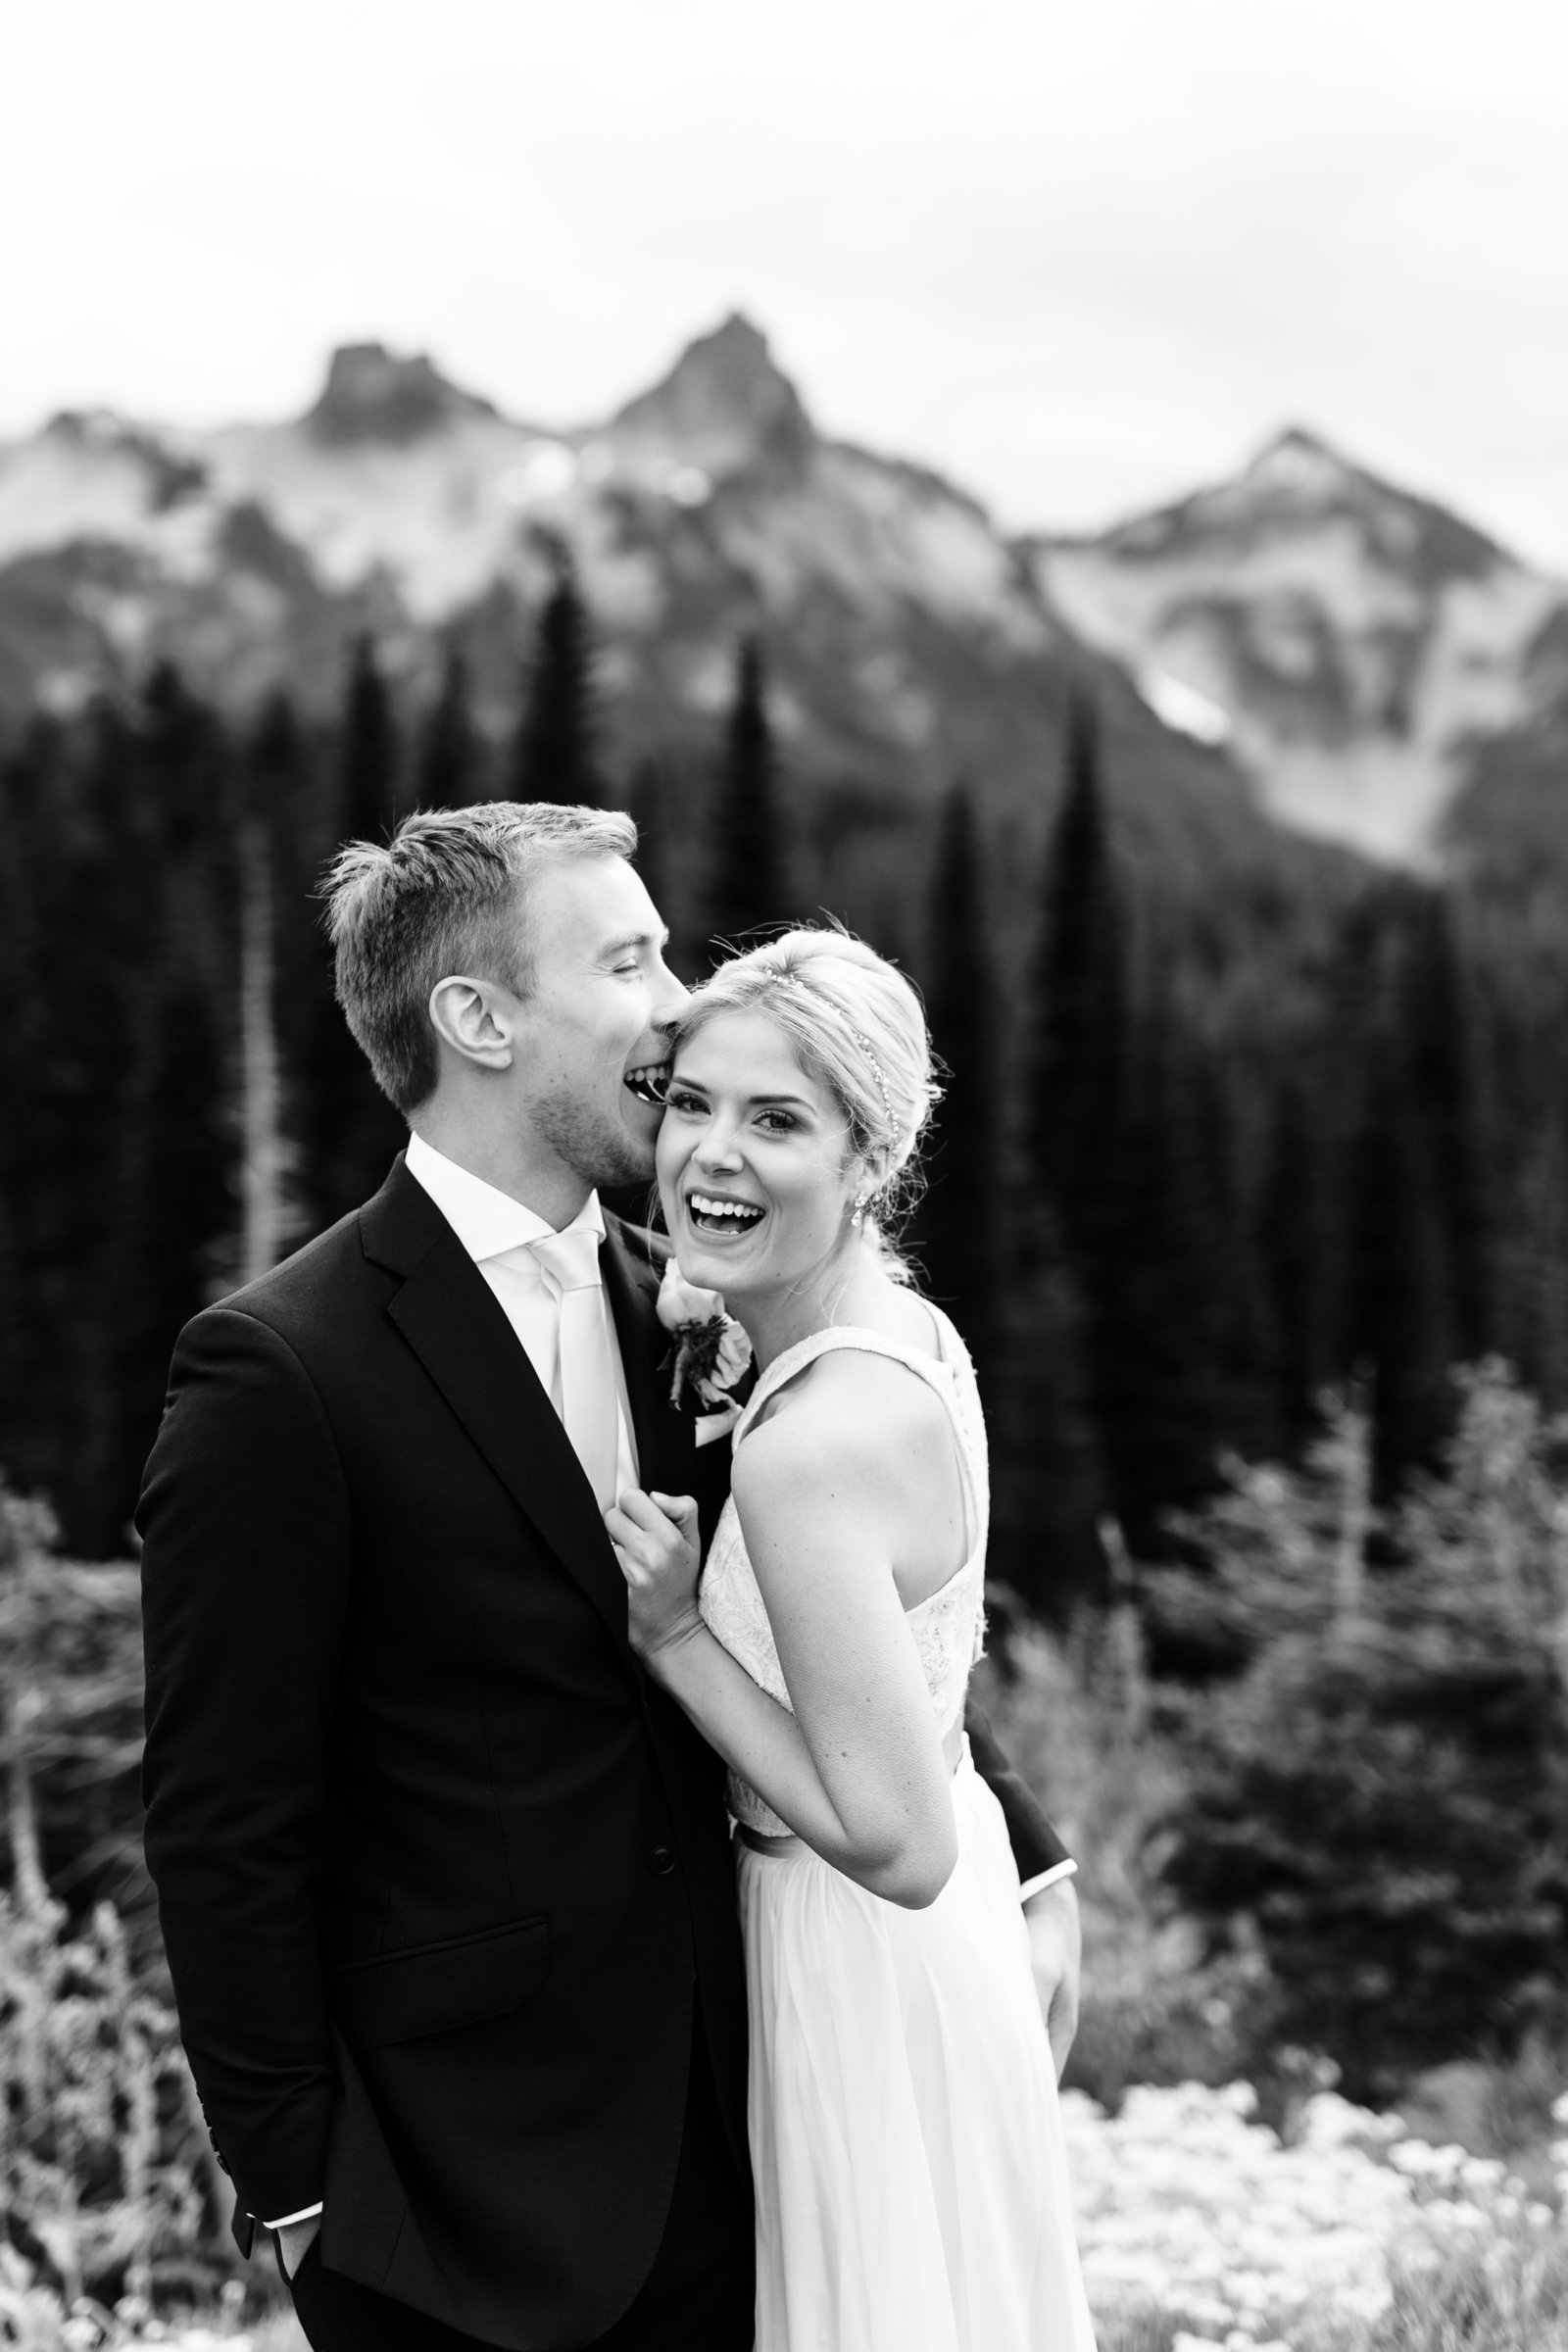 mount-rainier-national-park-elopement-cameron-zegers-photographer-seattle-138